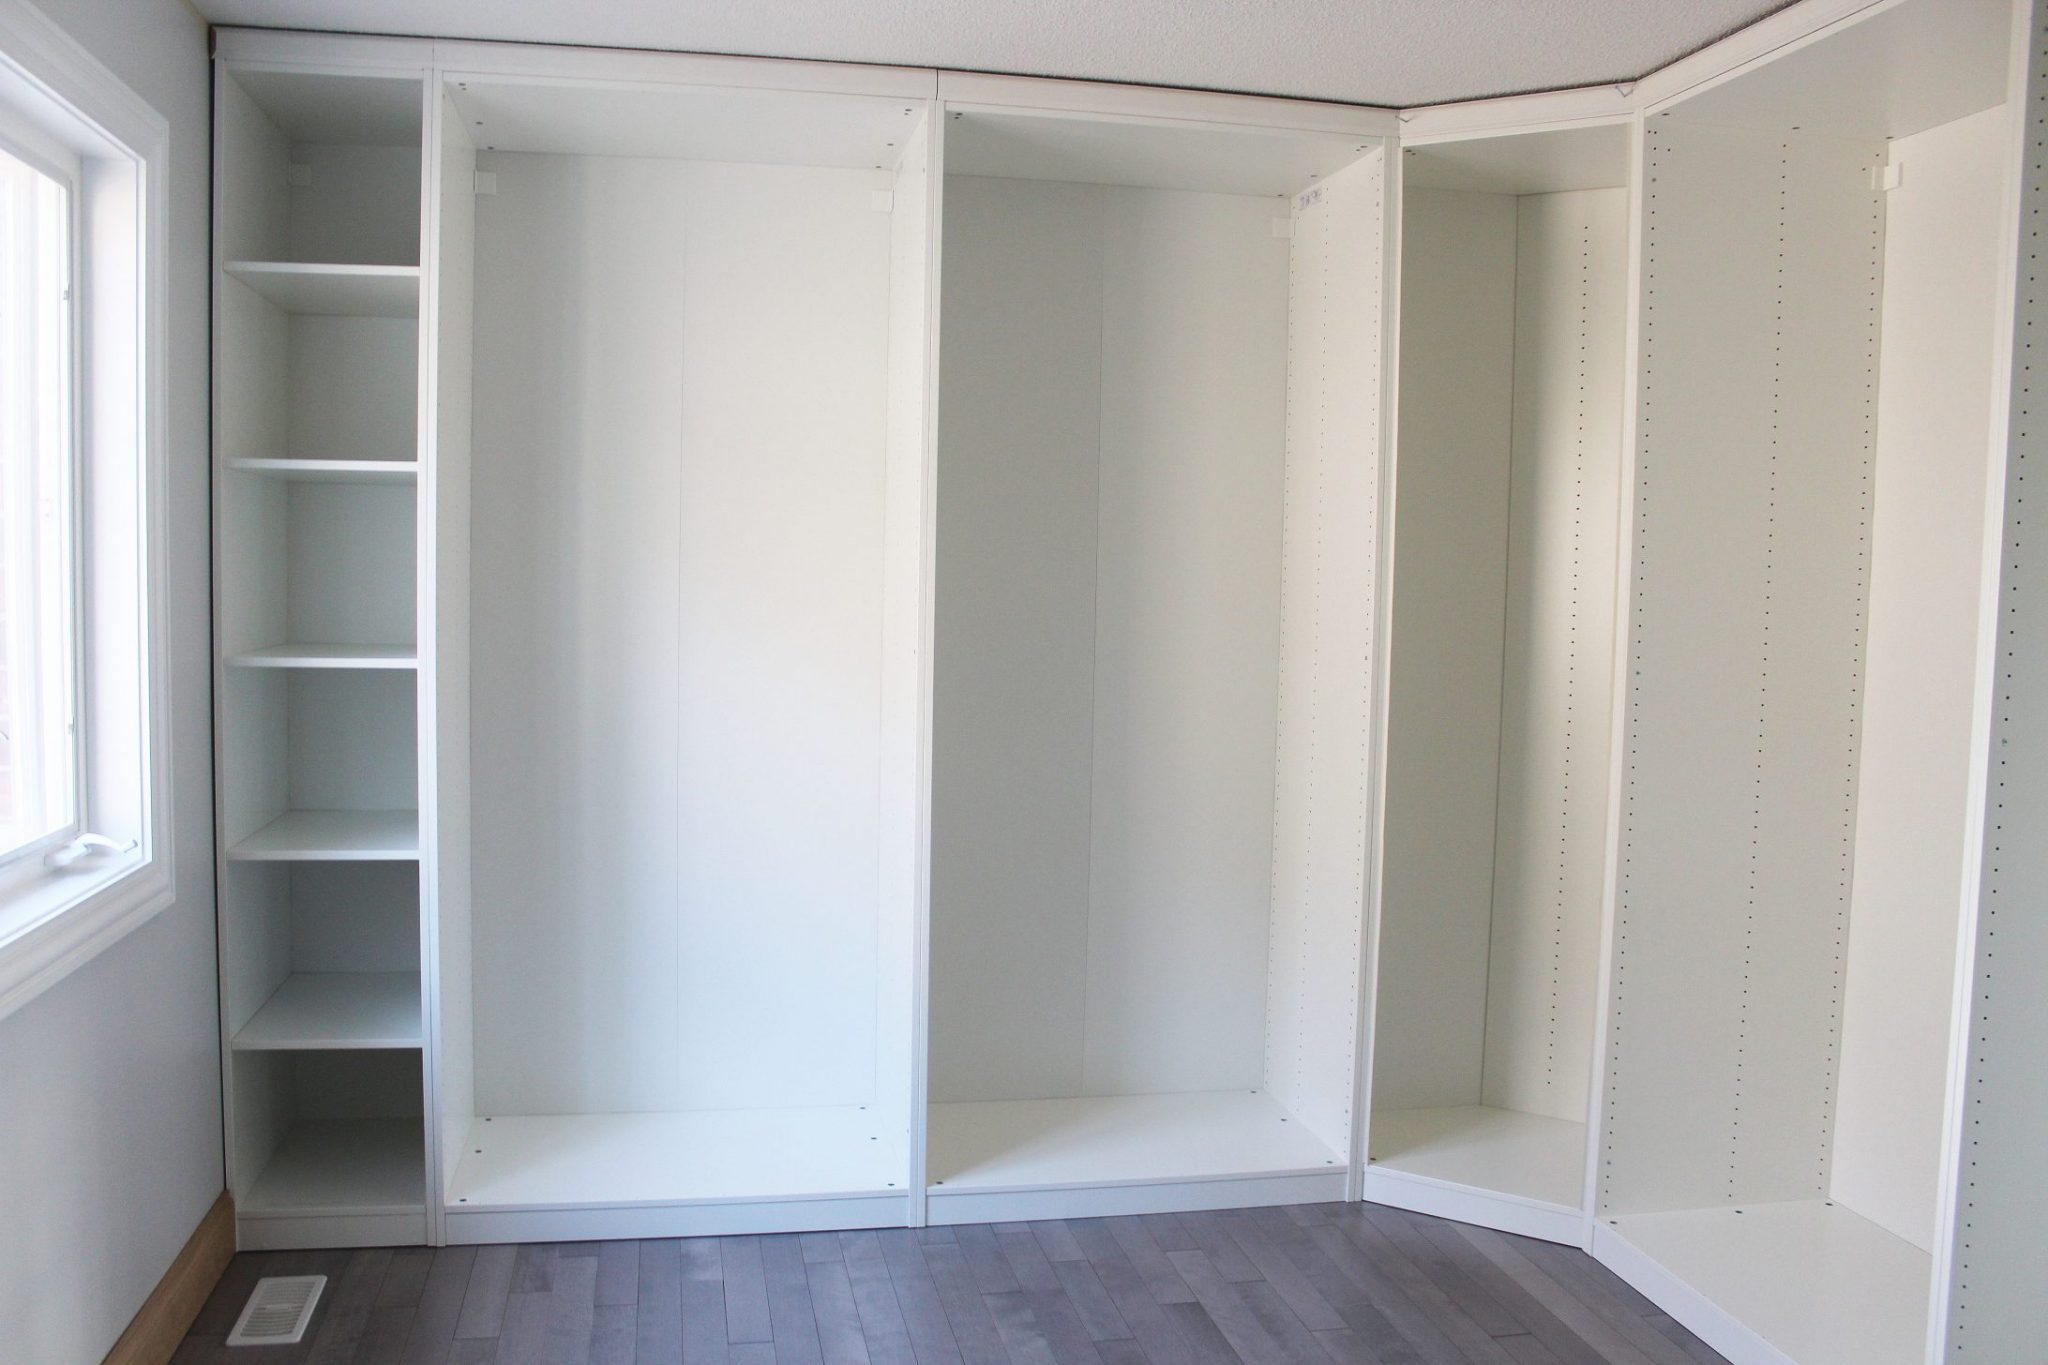 Last Closet Renovation Update - Almost Reveal Time!